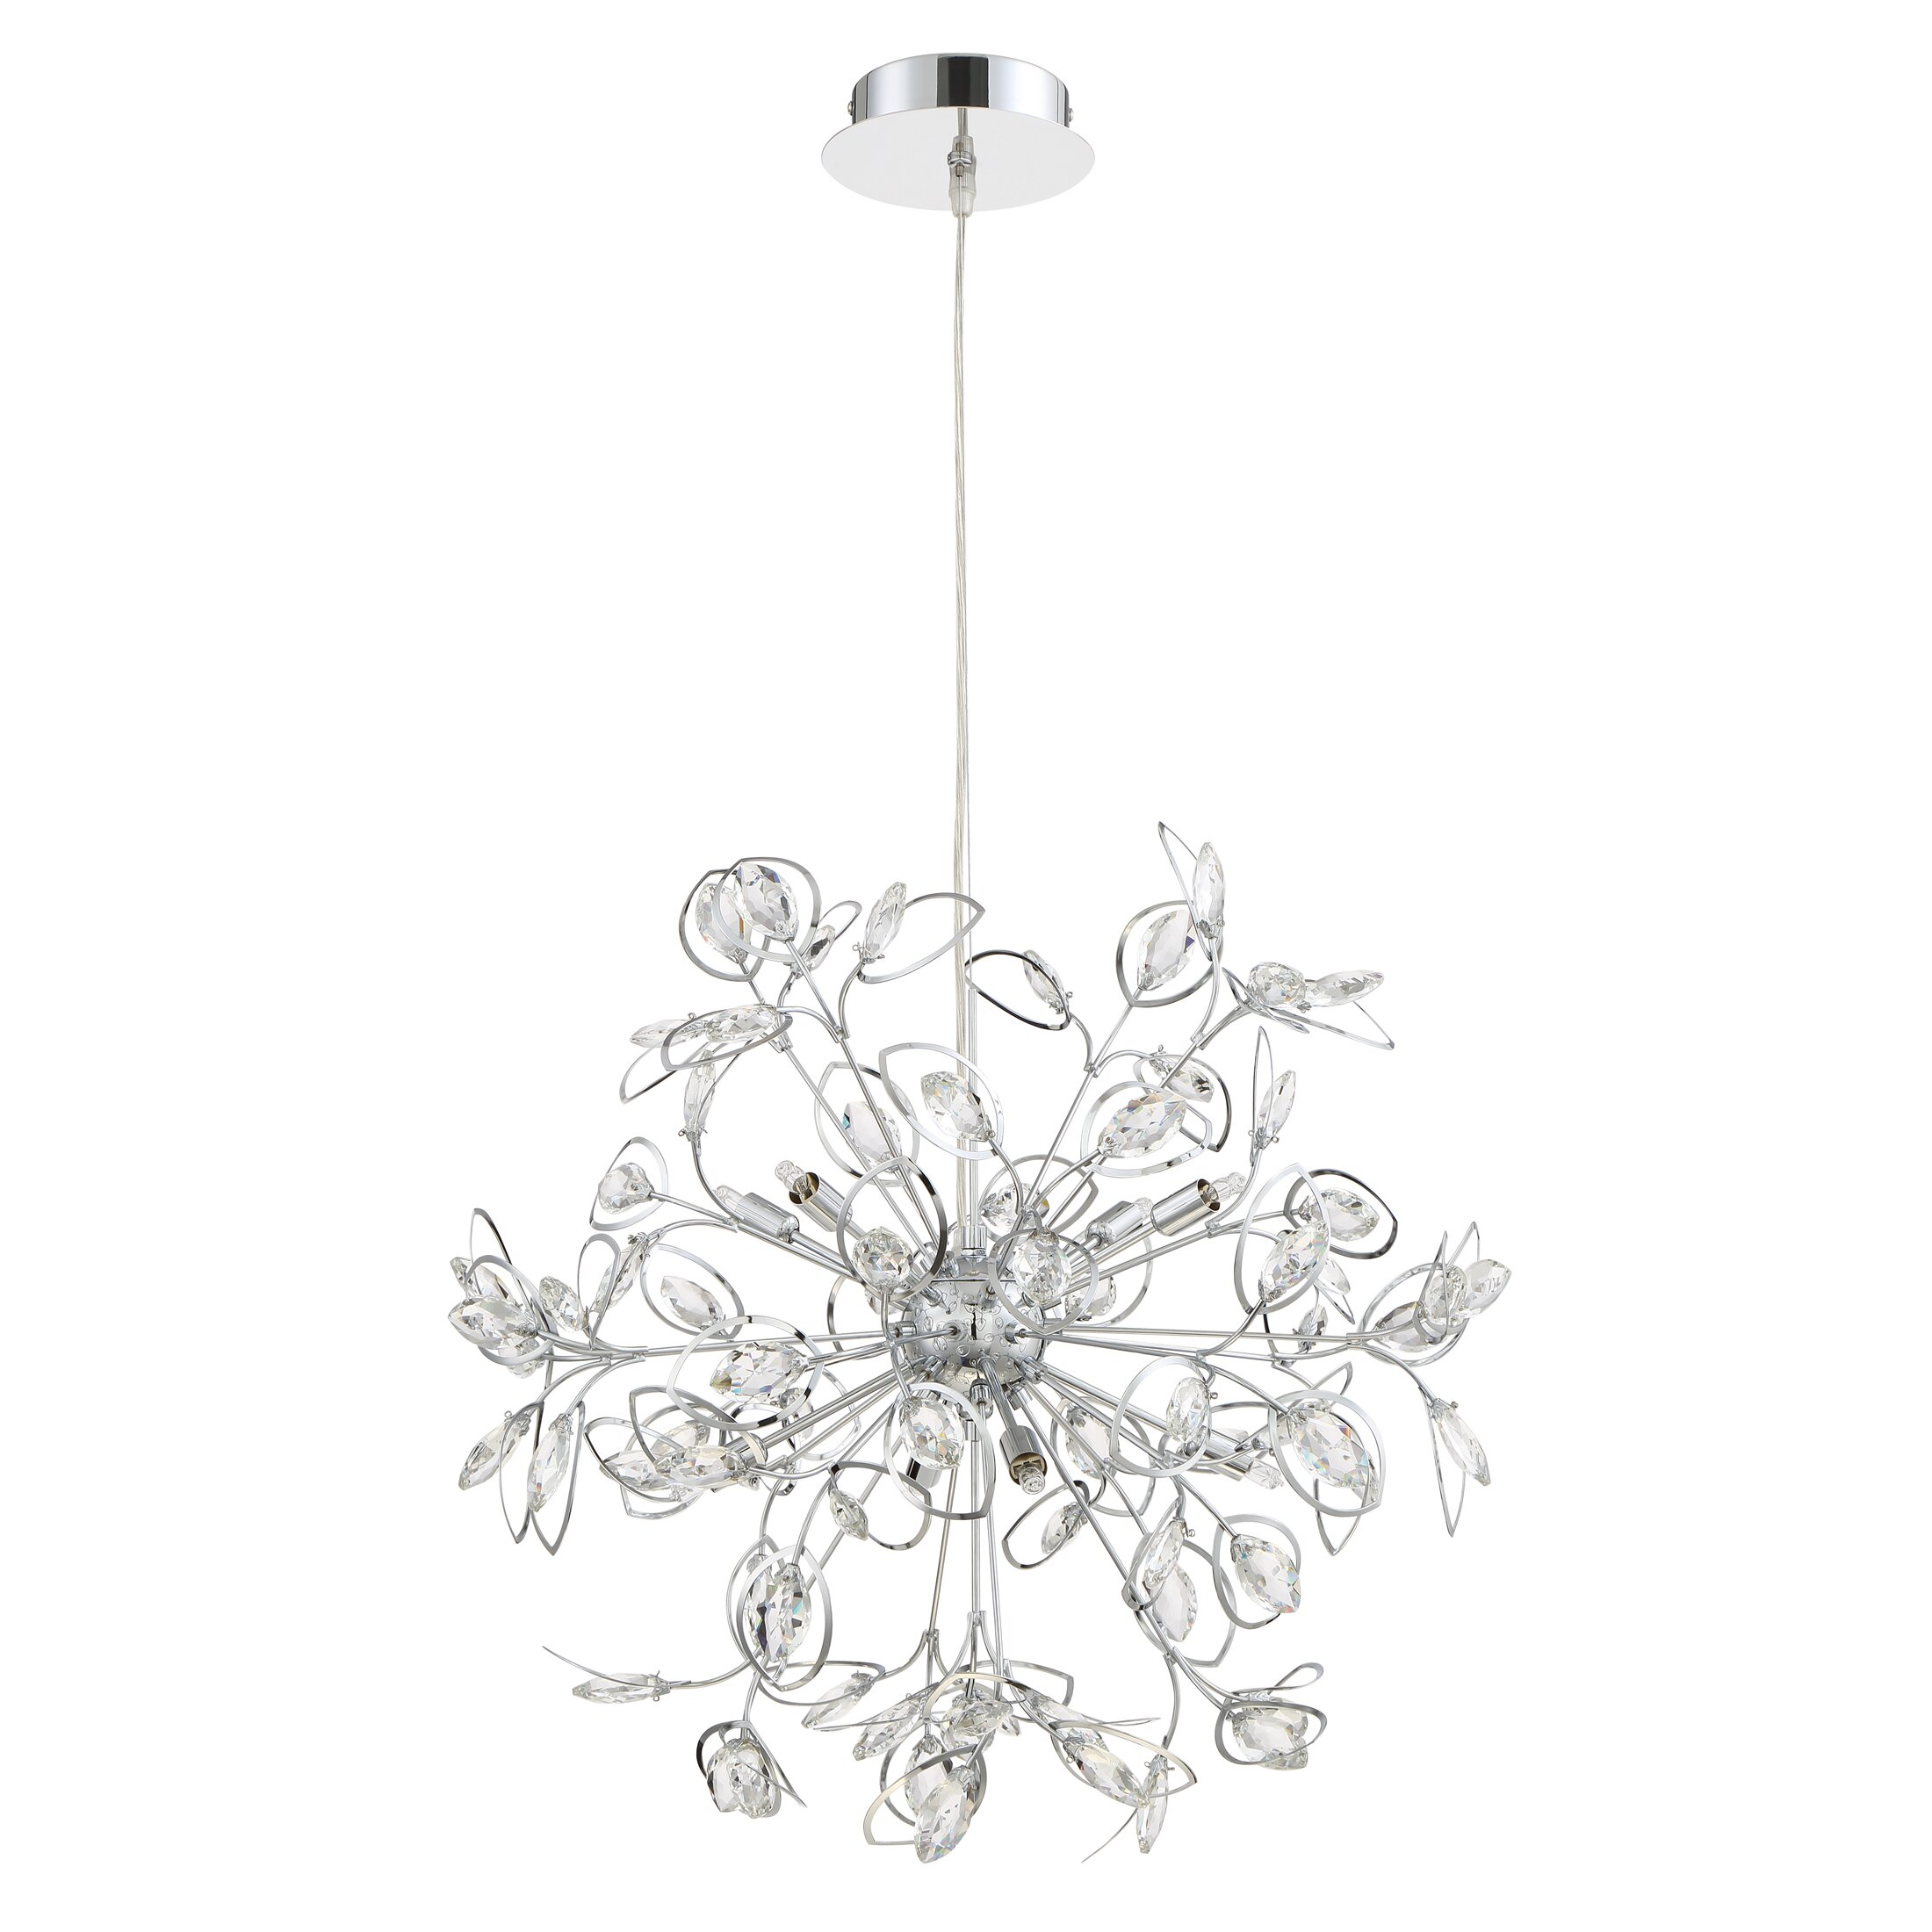 How To Wire A Chandelier Light Fixture On New Fixture Wiring Diagram